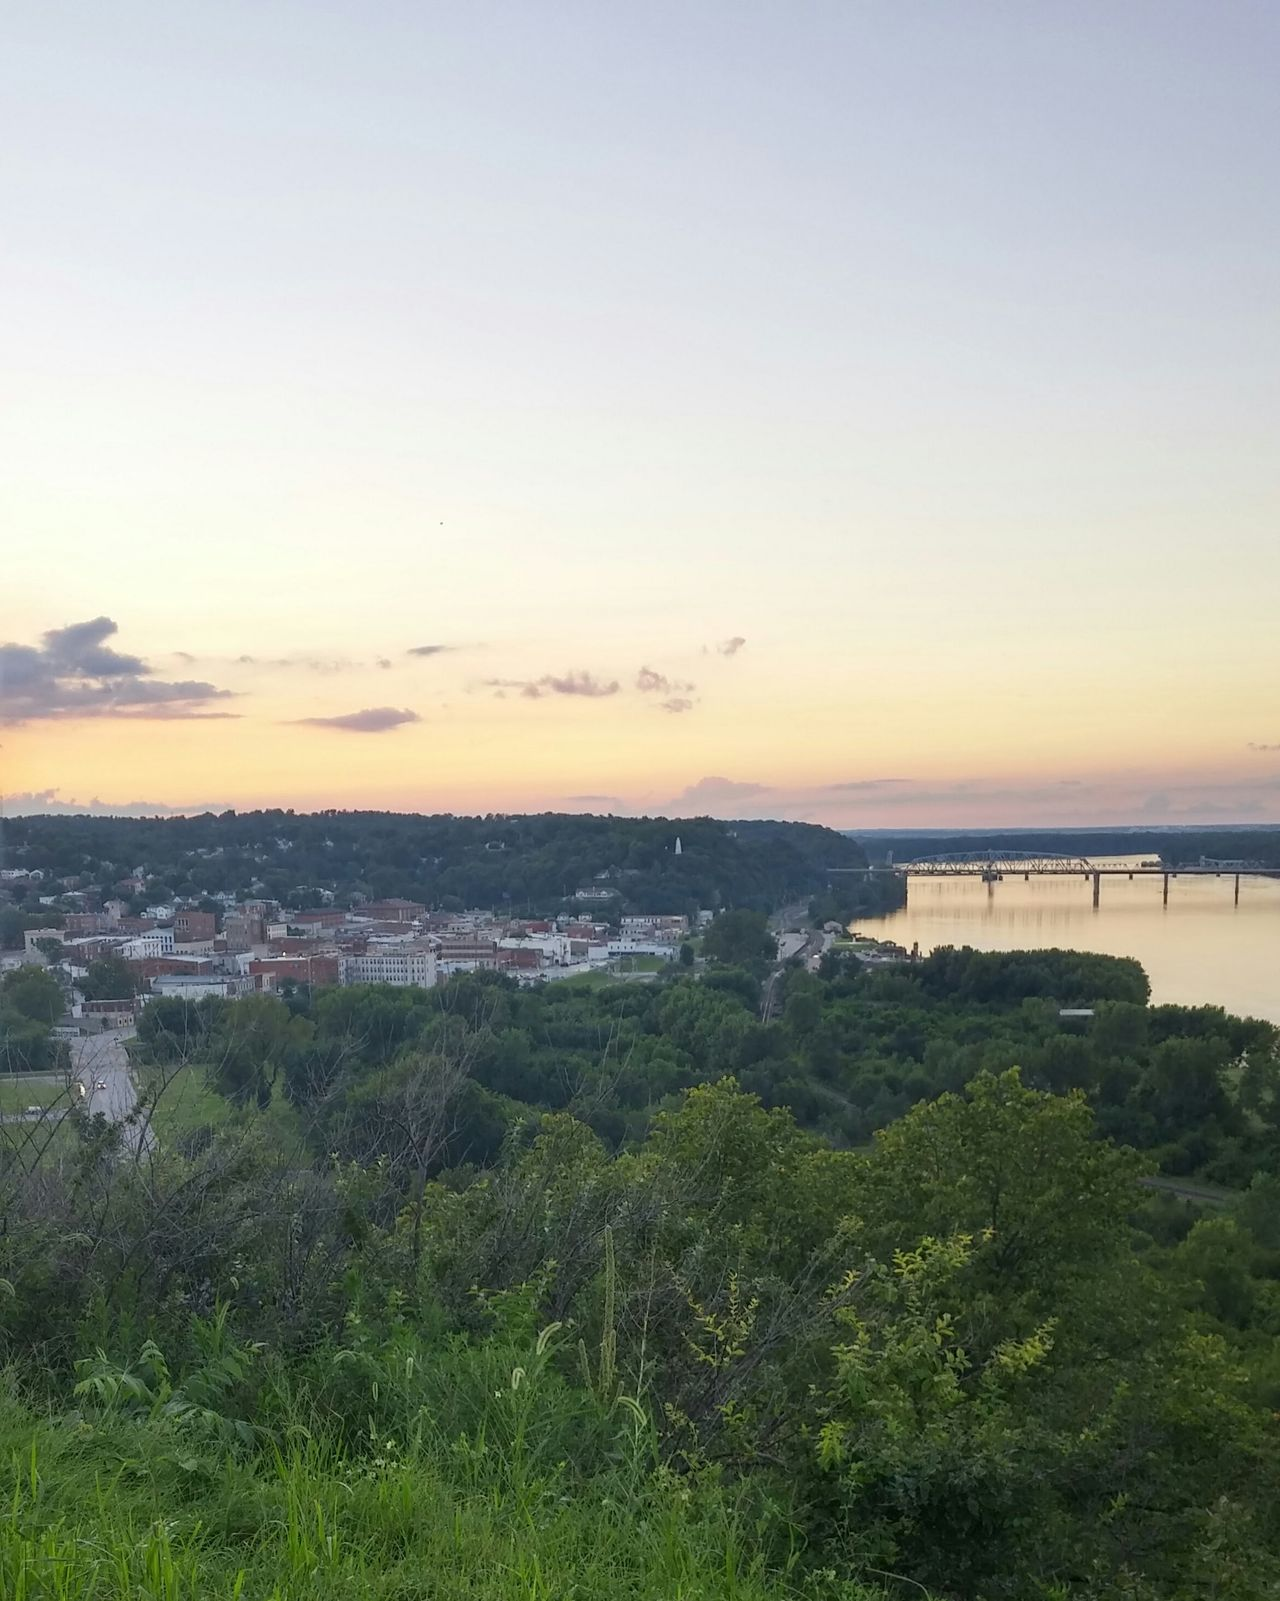 Cozy Town Sunset Riverfront River Mississippi River Hannibal Small Town Missouri Hometown